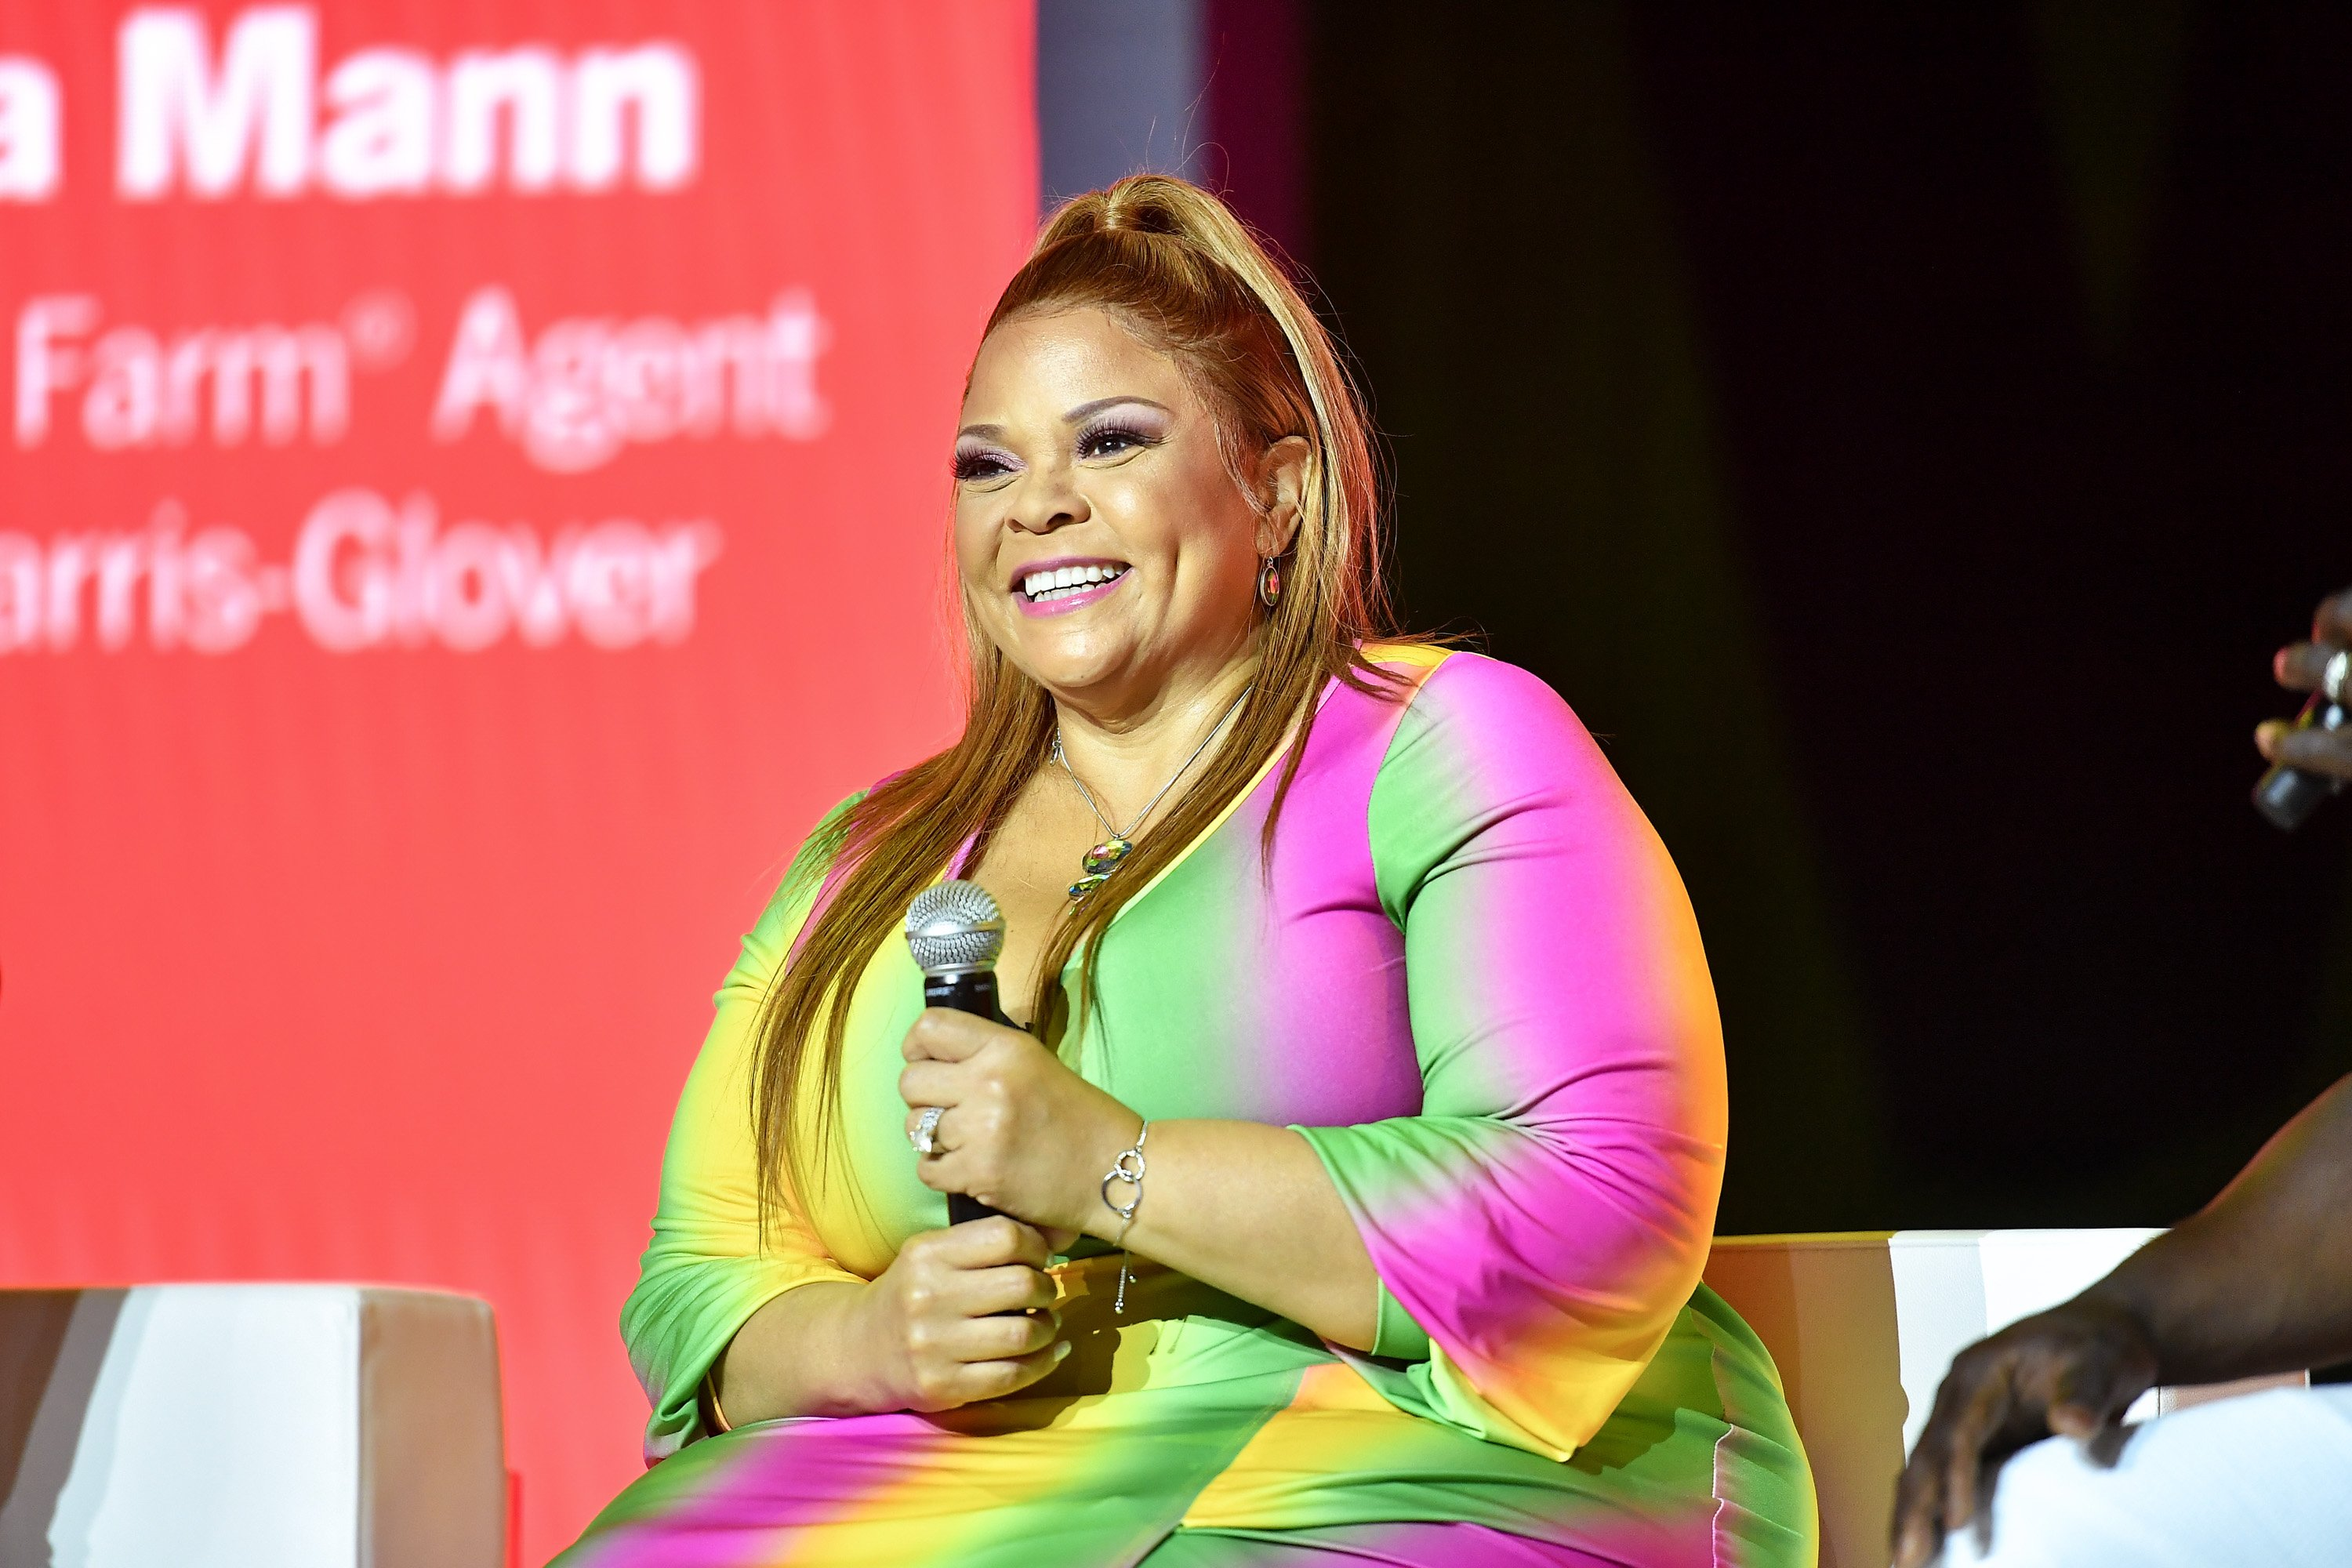 Tamela Mann at the 2019 Esence Festival at Ernest N. Morial Convention Center on July 05, 2019 in New Orleans, Louisiana.| Source: Getty Images